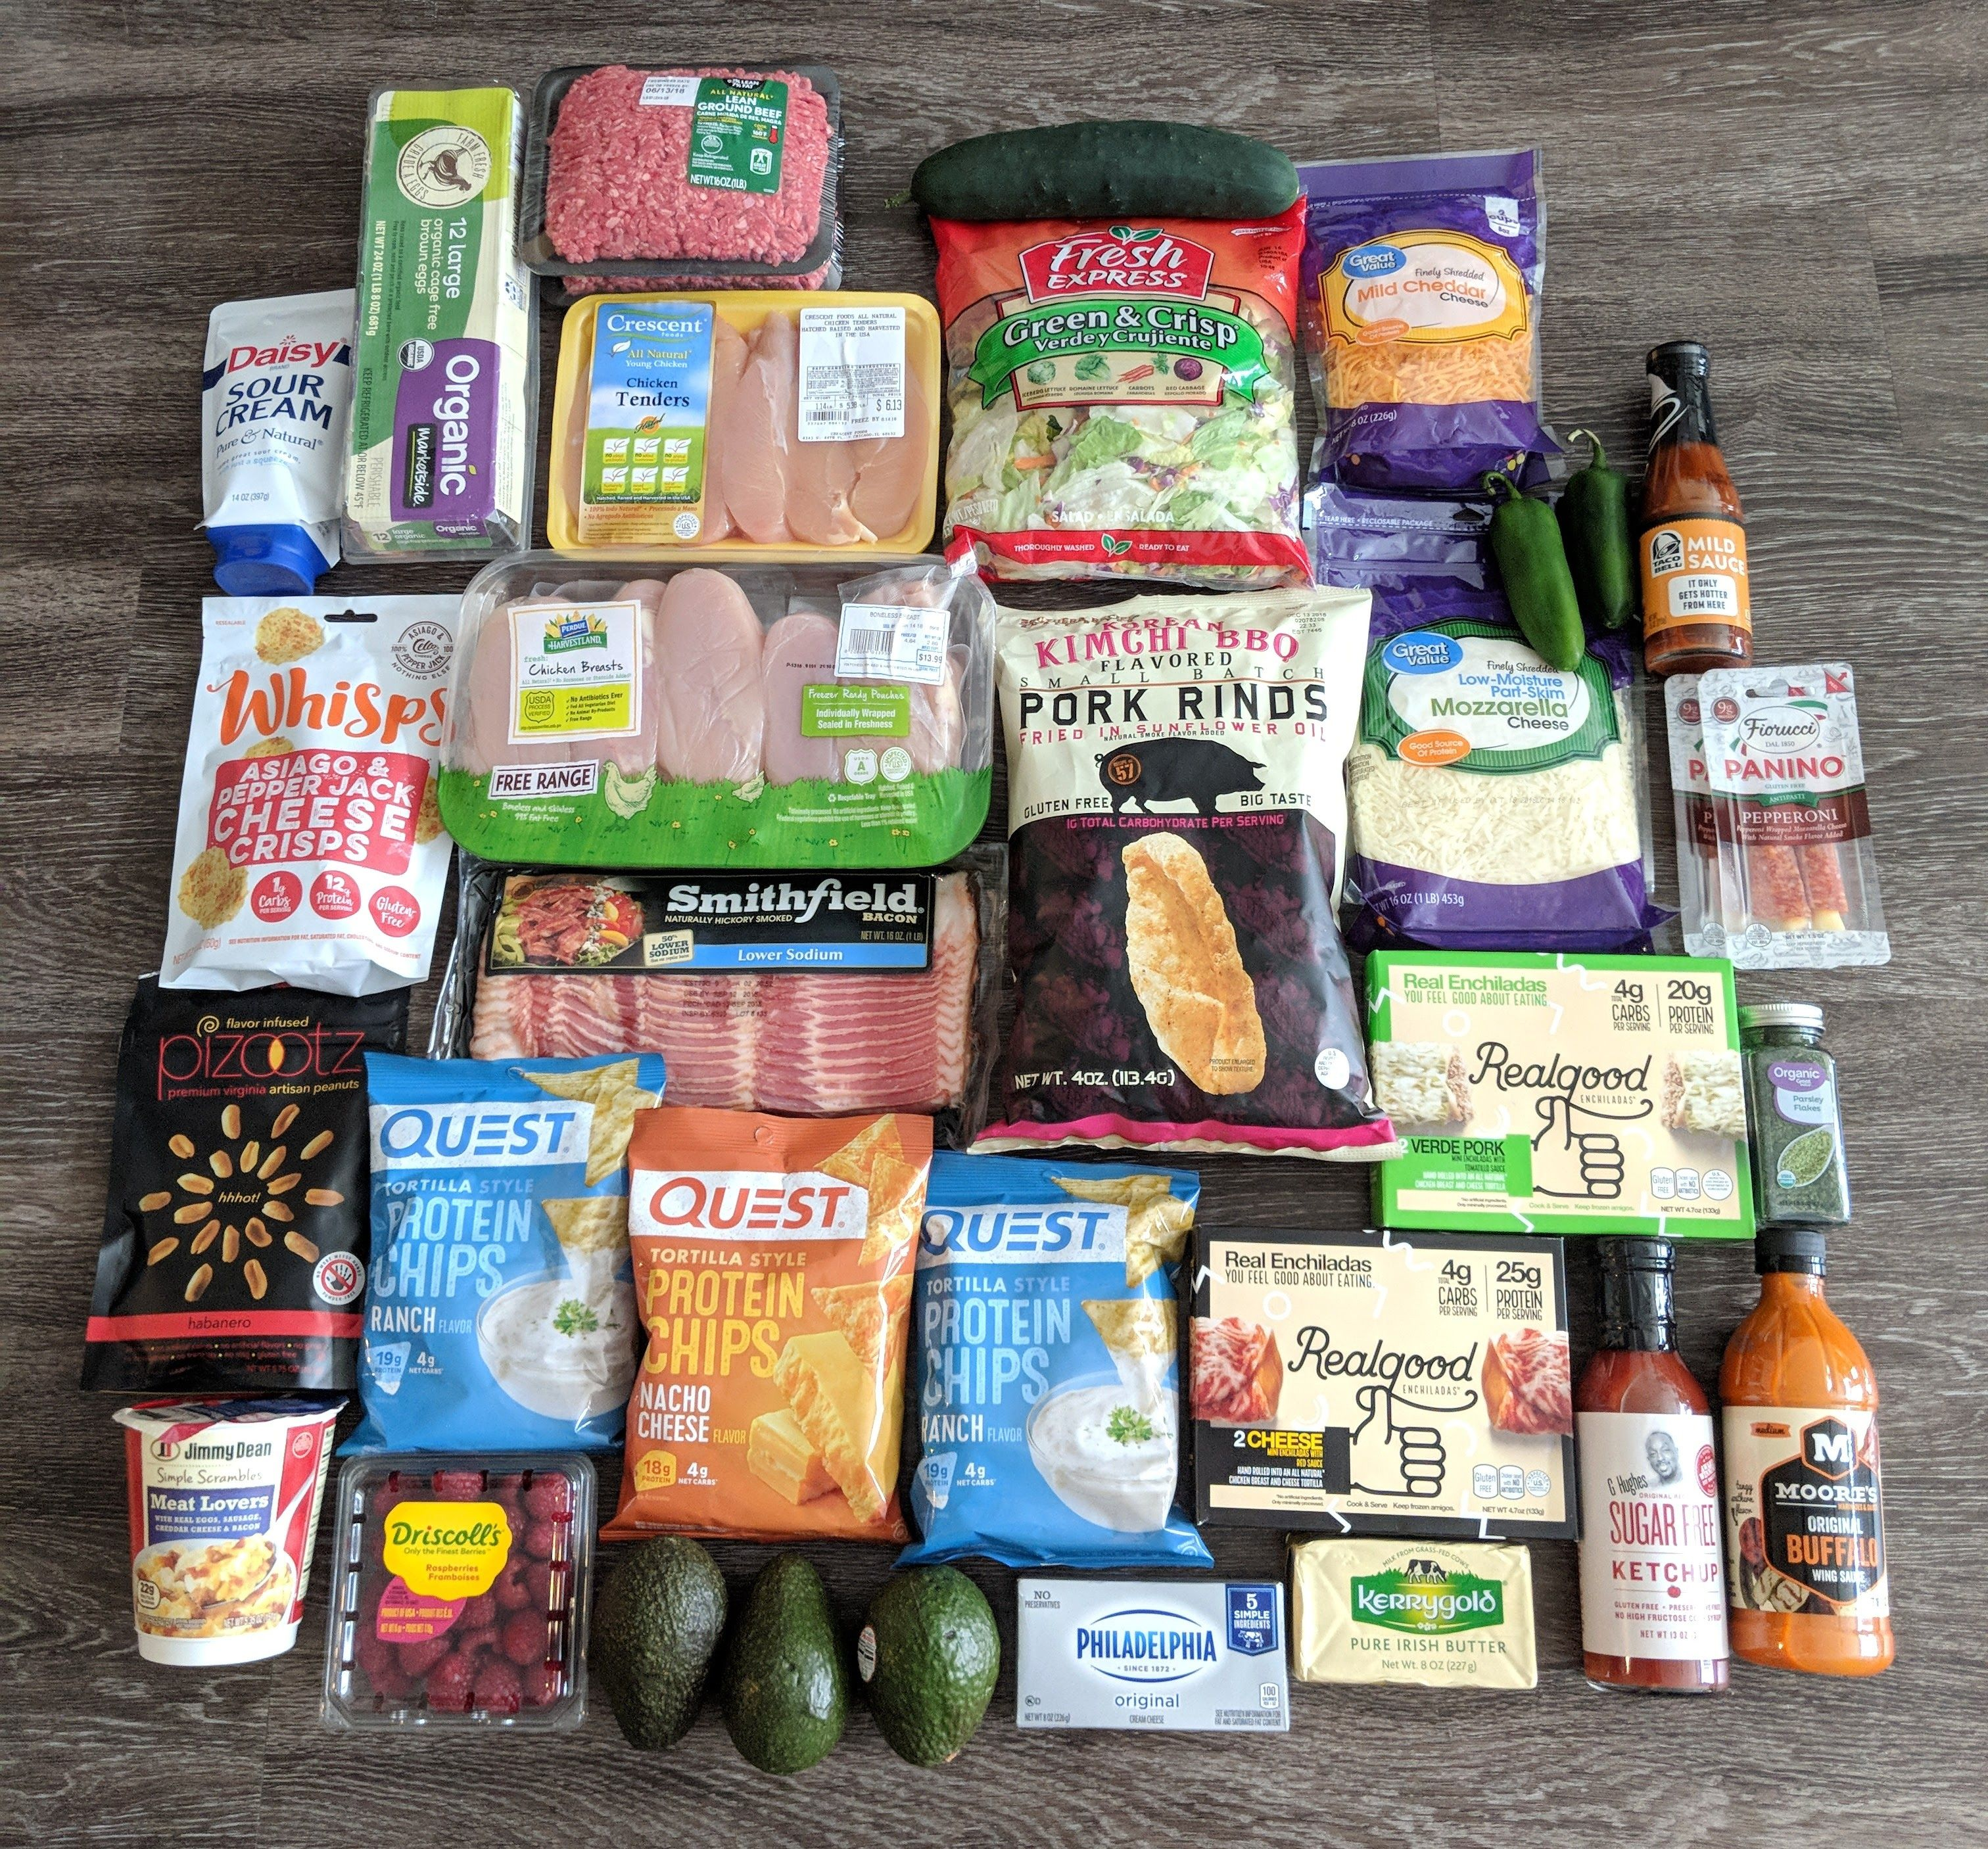 Walmart, Kroger & Costco Haul (With images) Low carb